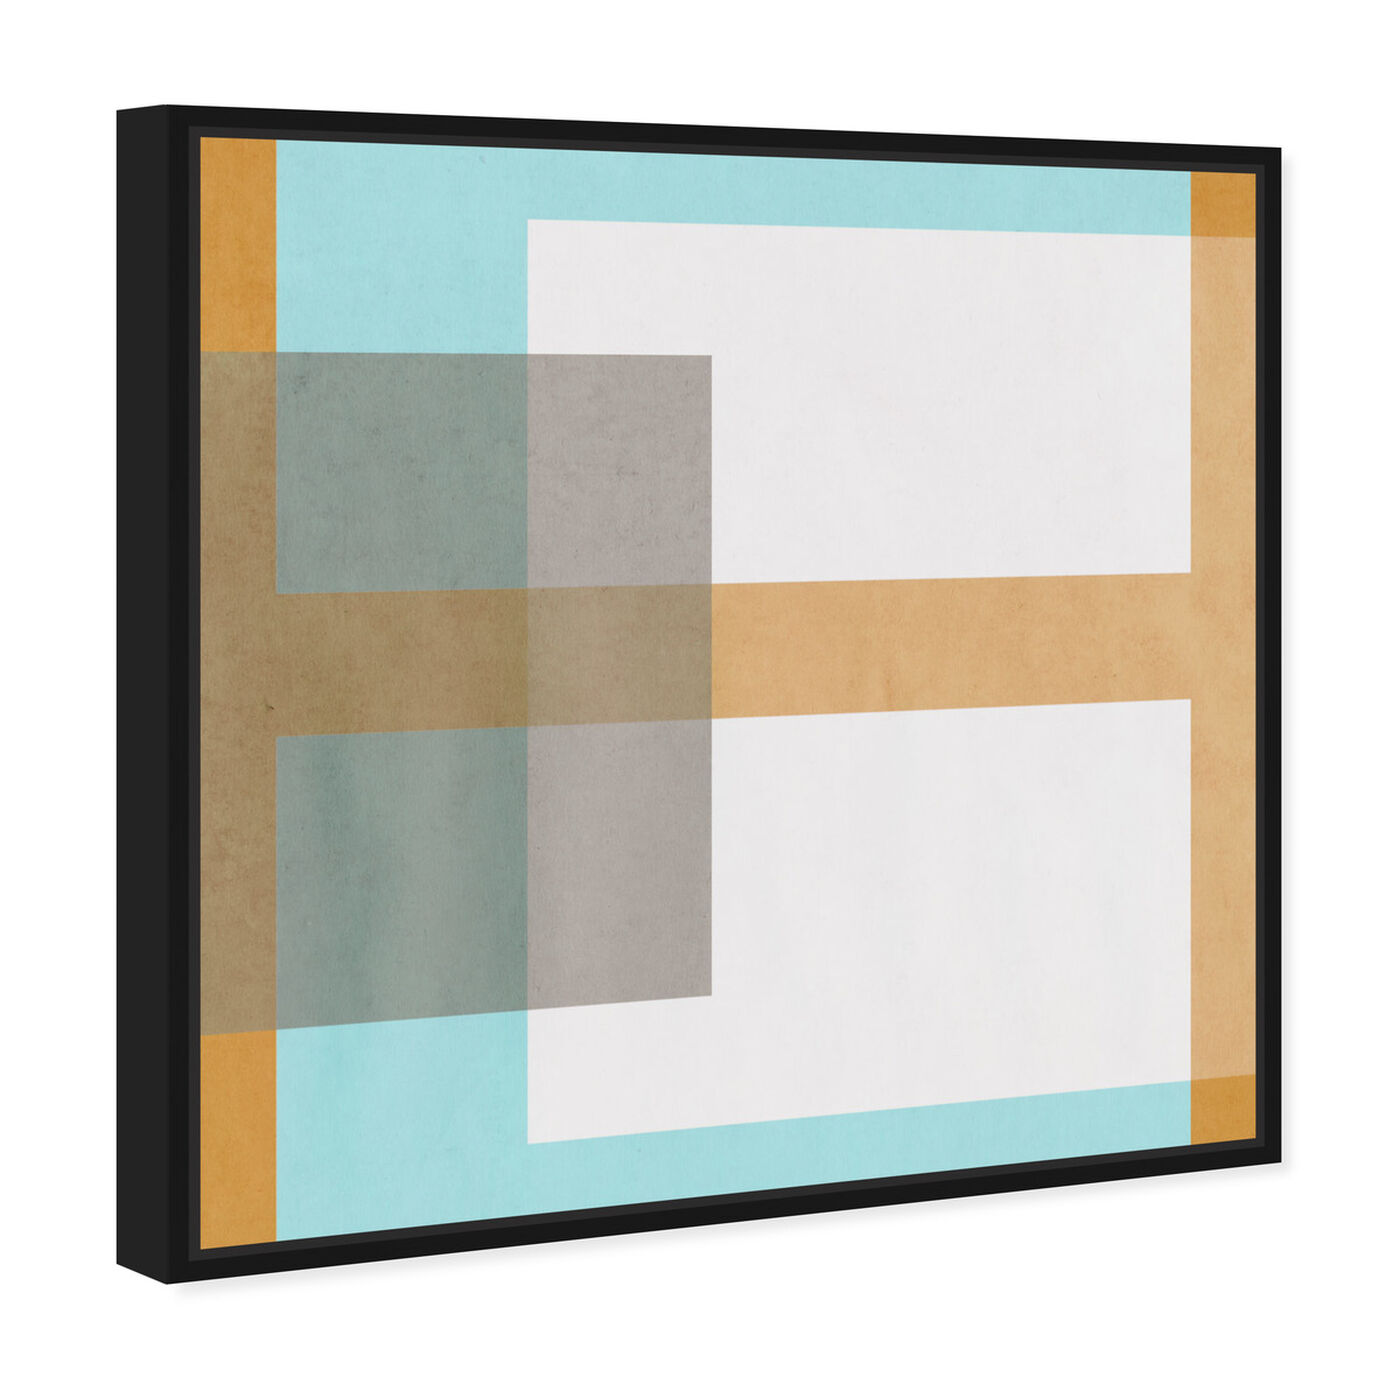 Angled view of Cortado de Verano featuring abstract and geometric art.